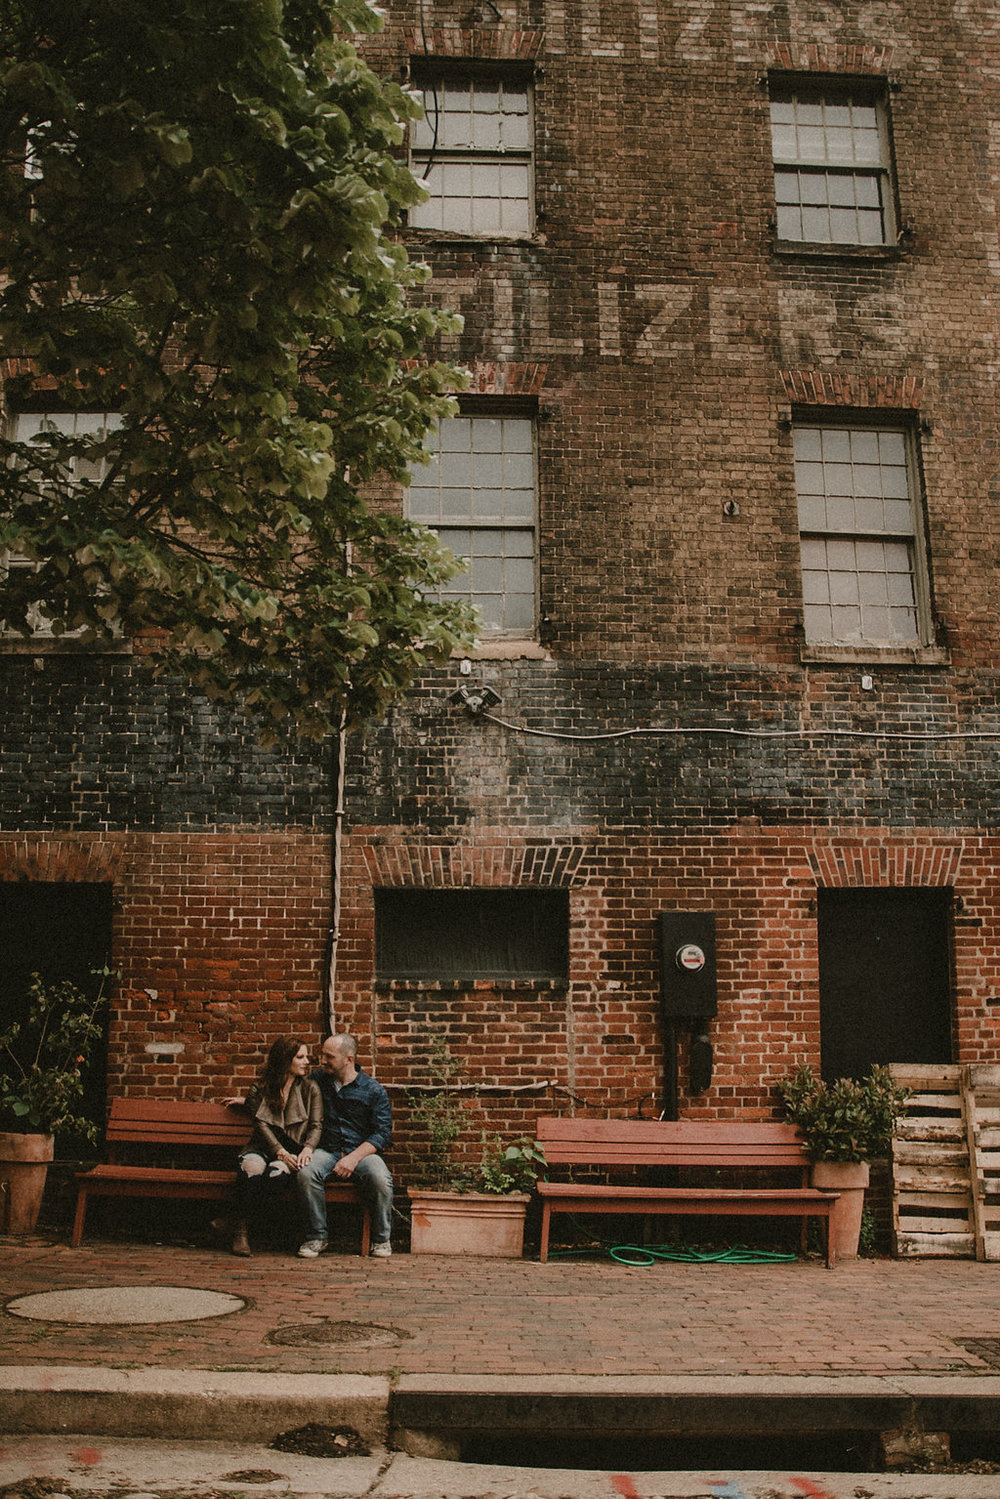 Couple sitting on bench far away